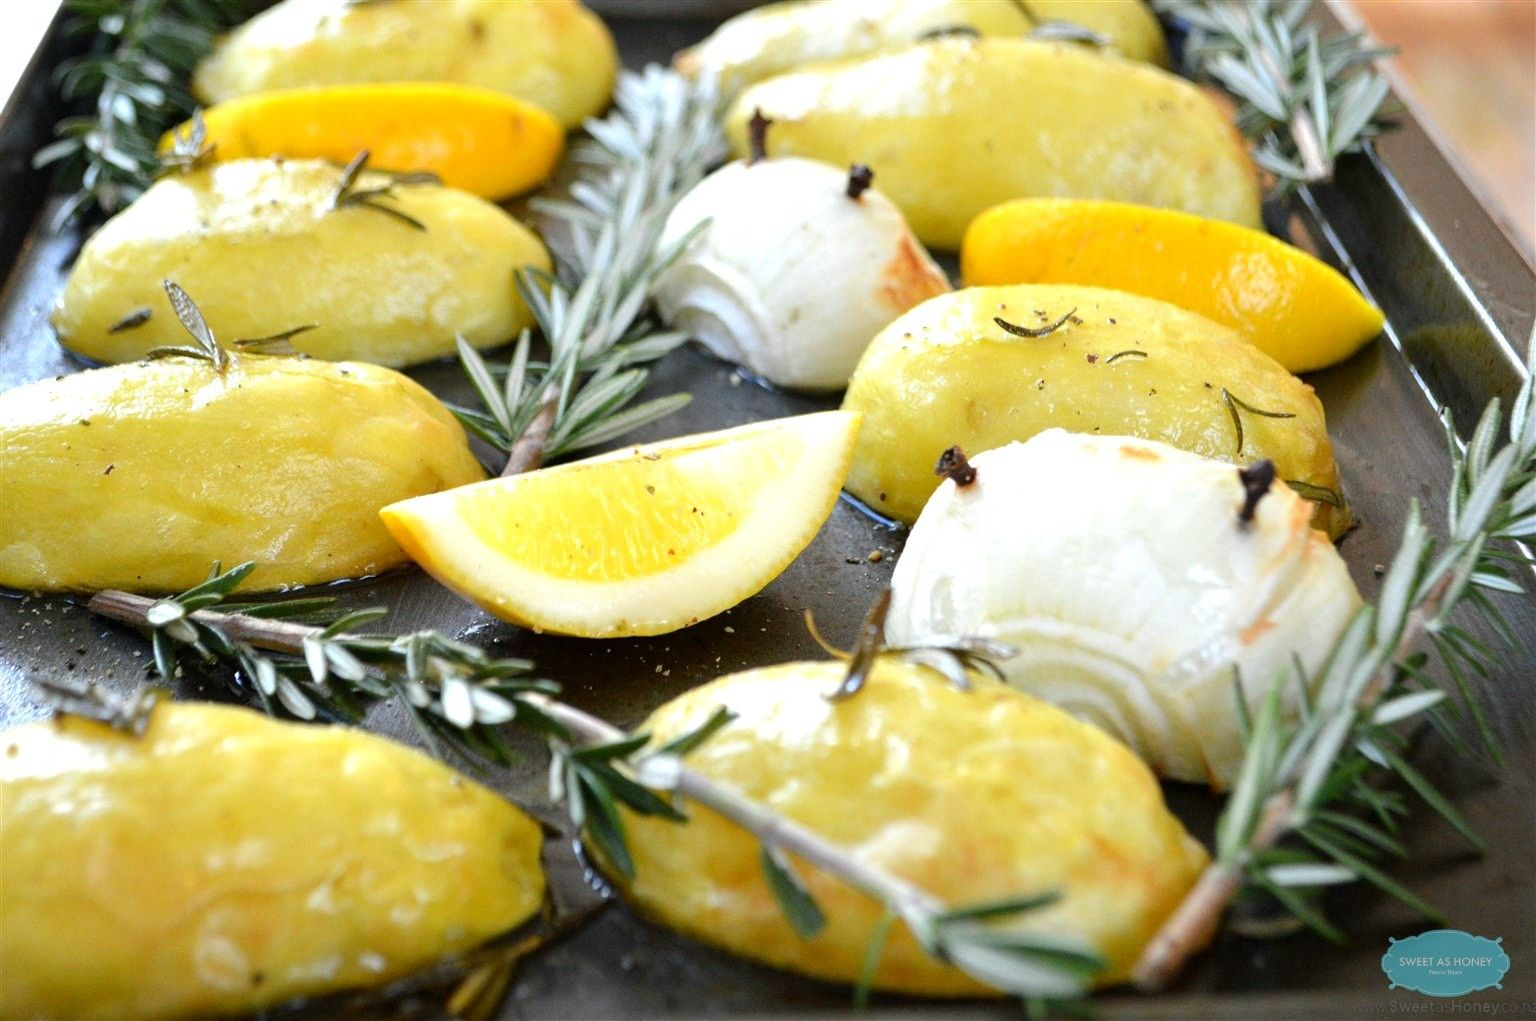 Roast potatoes with Lemon and Rosemary // Pommes de terre au four au Citron et Romarin